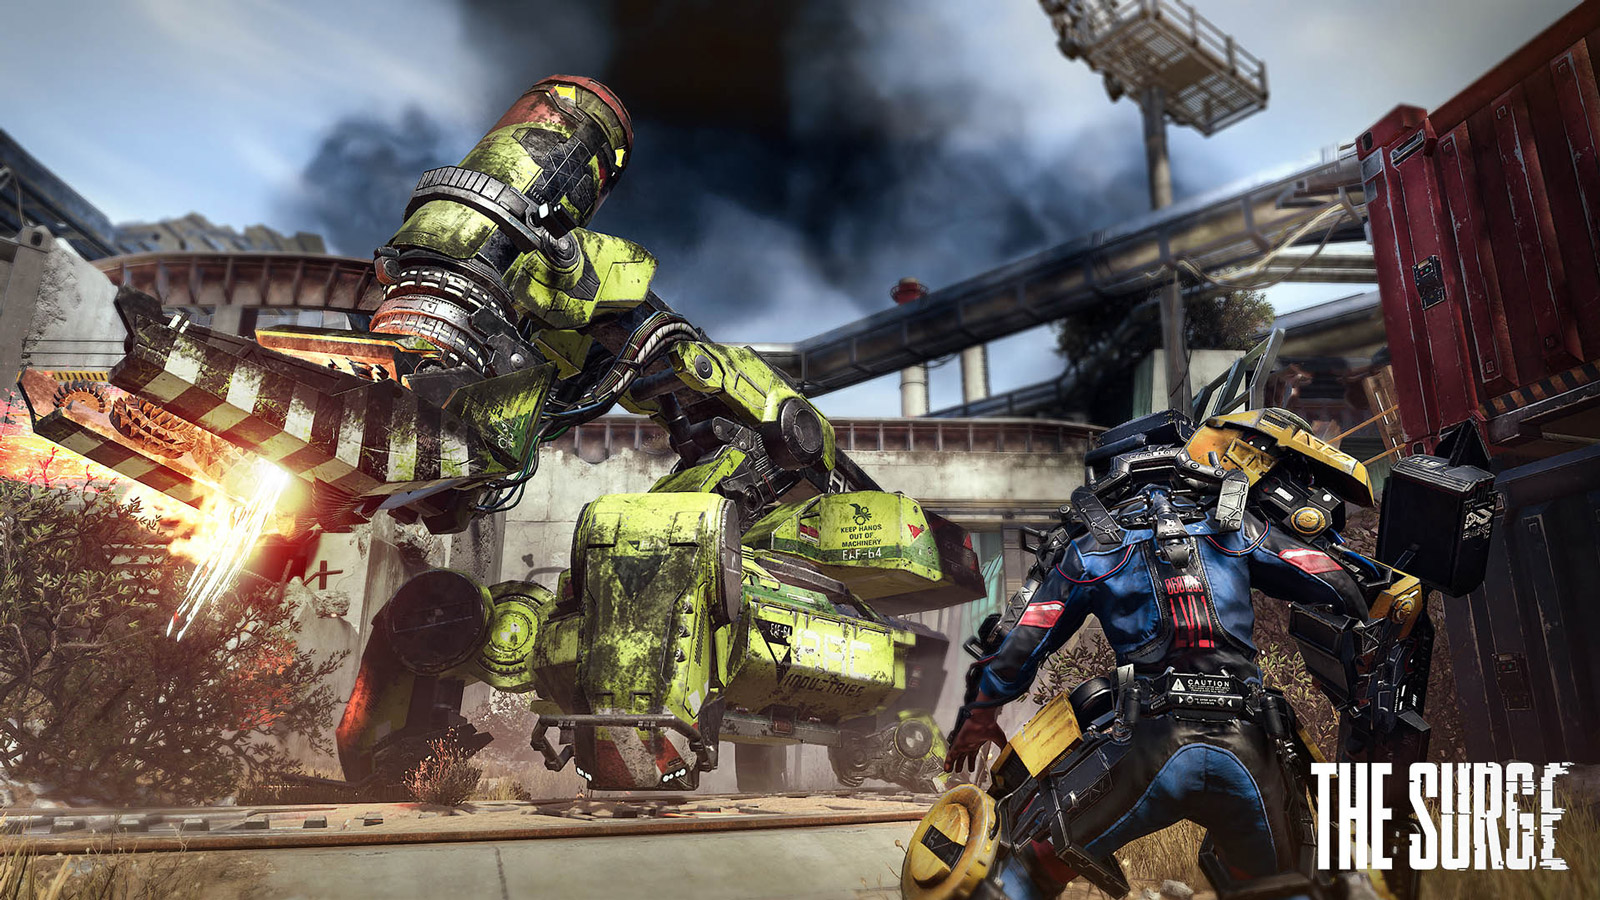 Free The Surge Wallpaper in 1600x900